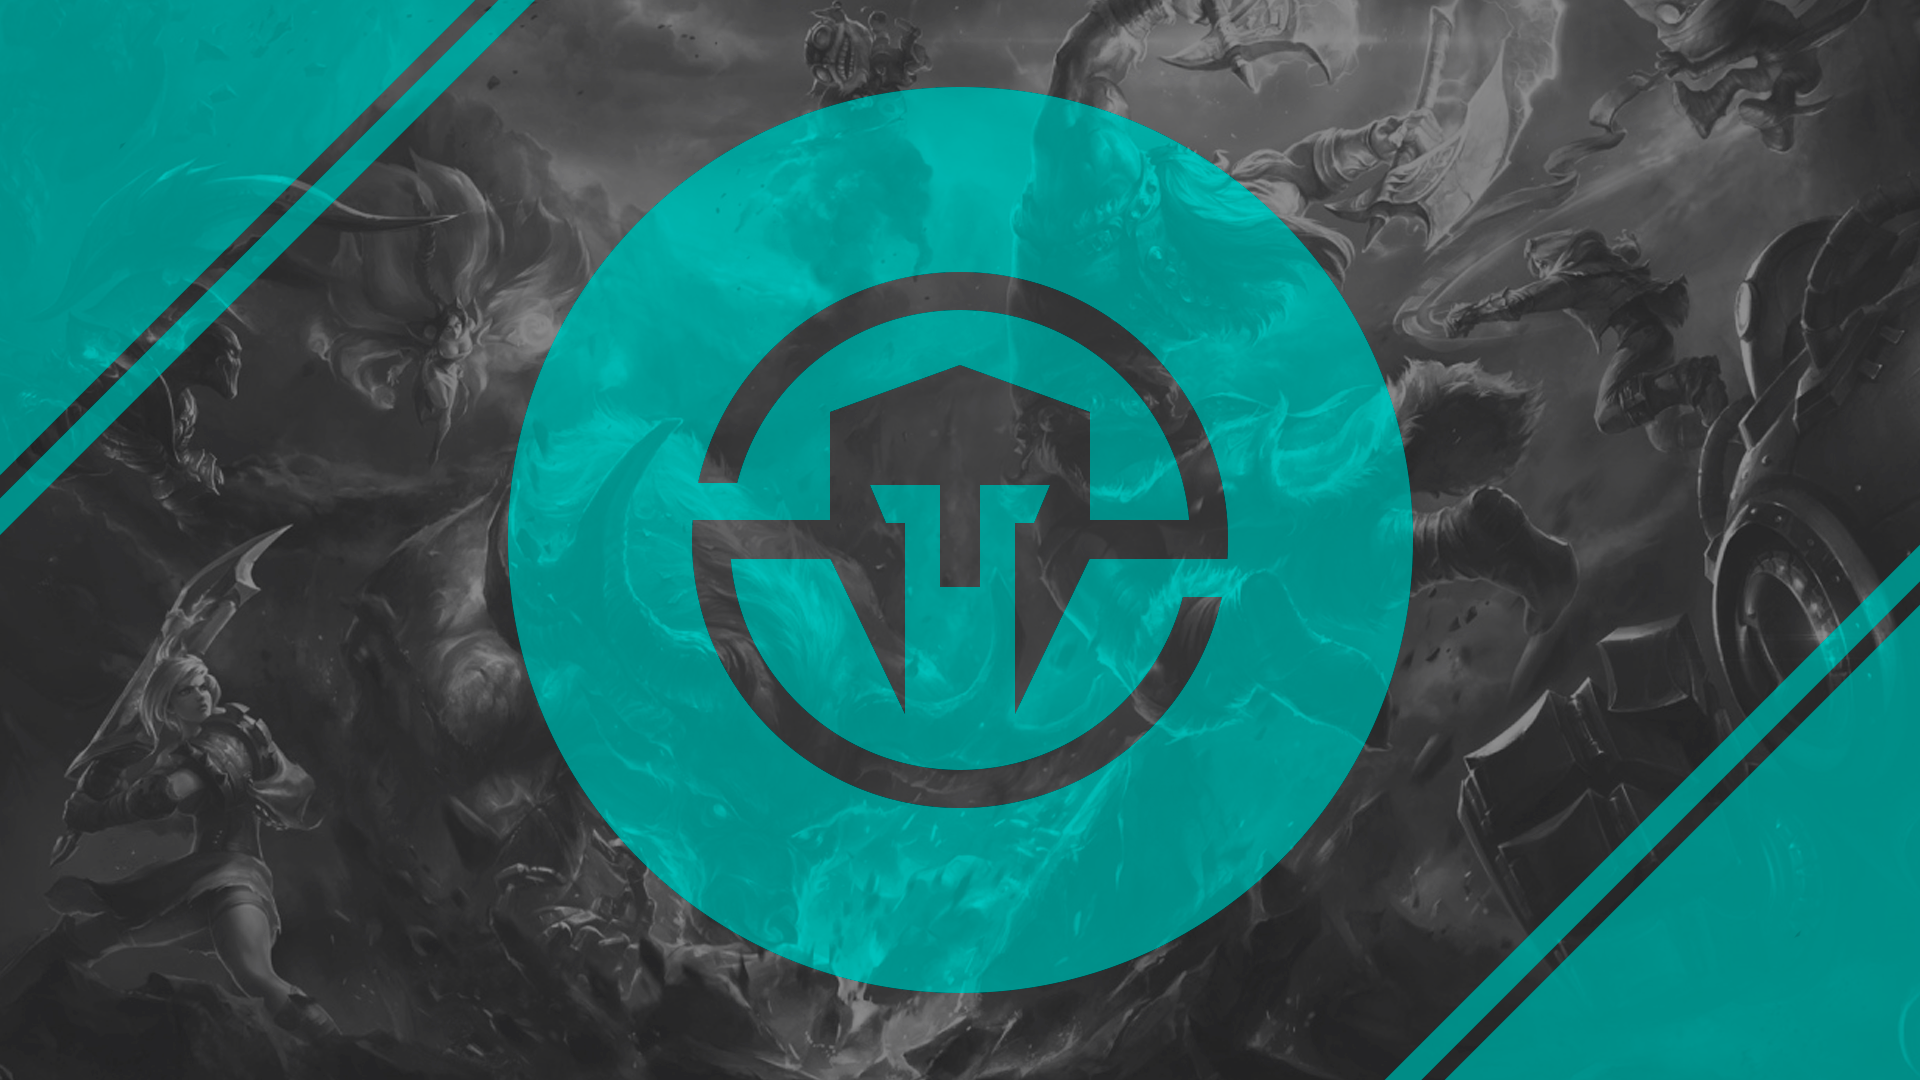 Immortals wallpaper